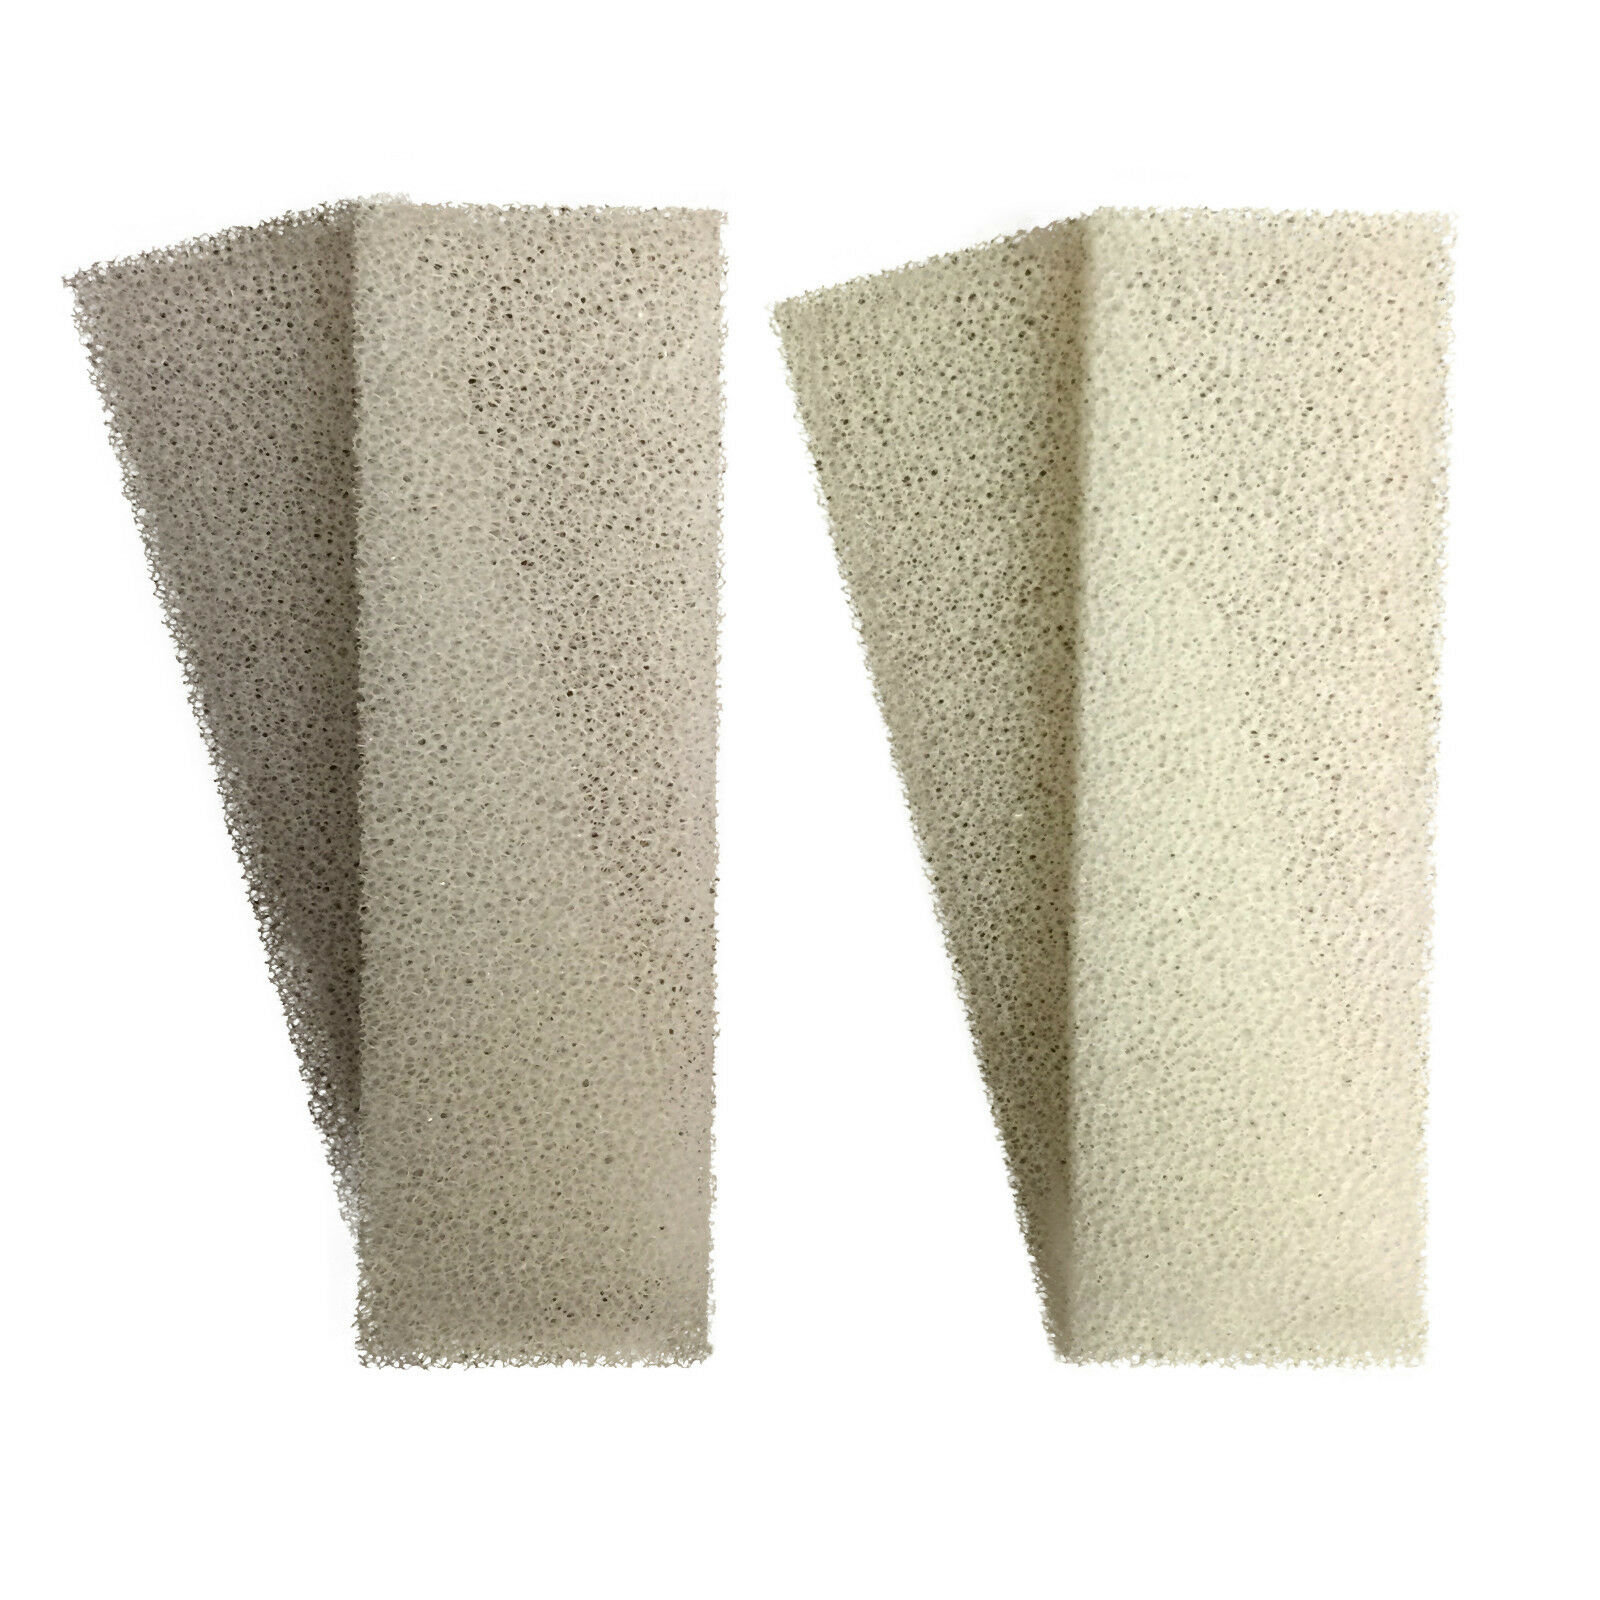 Finest-Filters 12 x Compatible Foam and 12 x Compatible Polycarbon Carbon Filter Cartridges to Fit Fluval U2 Internal